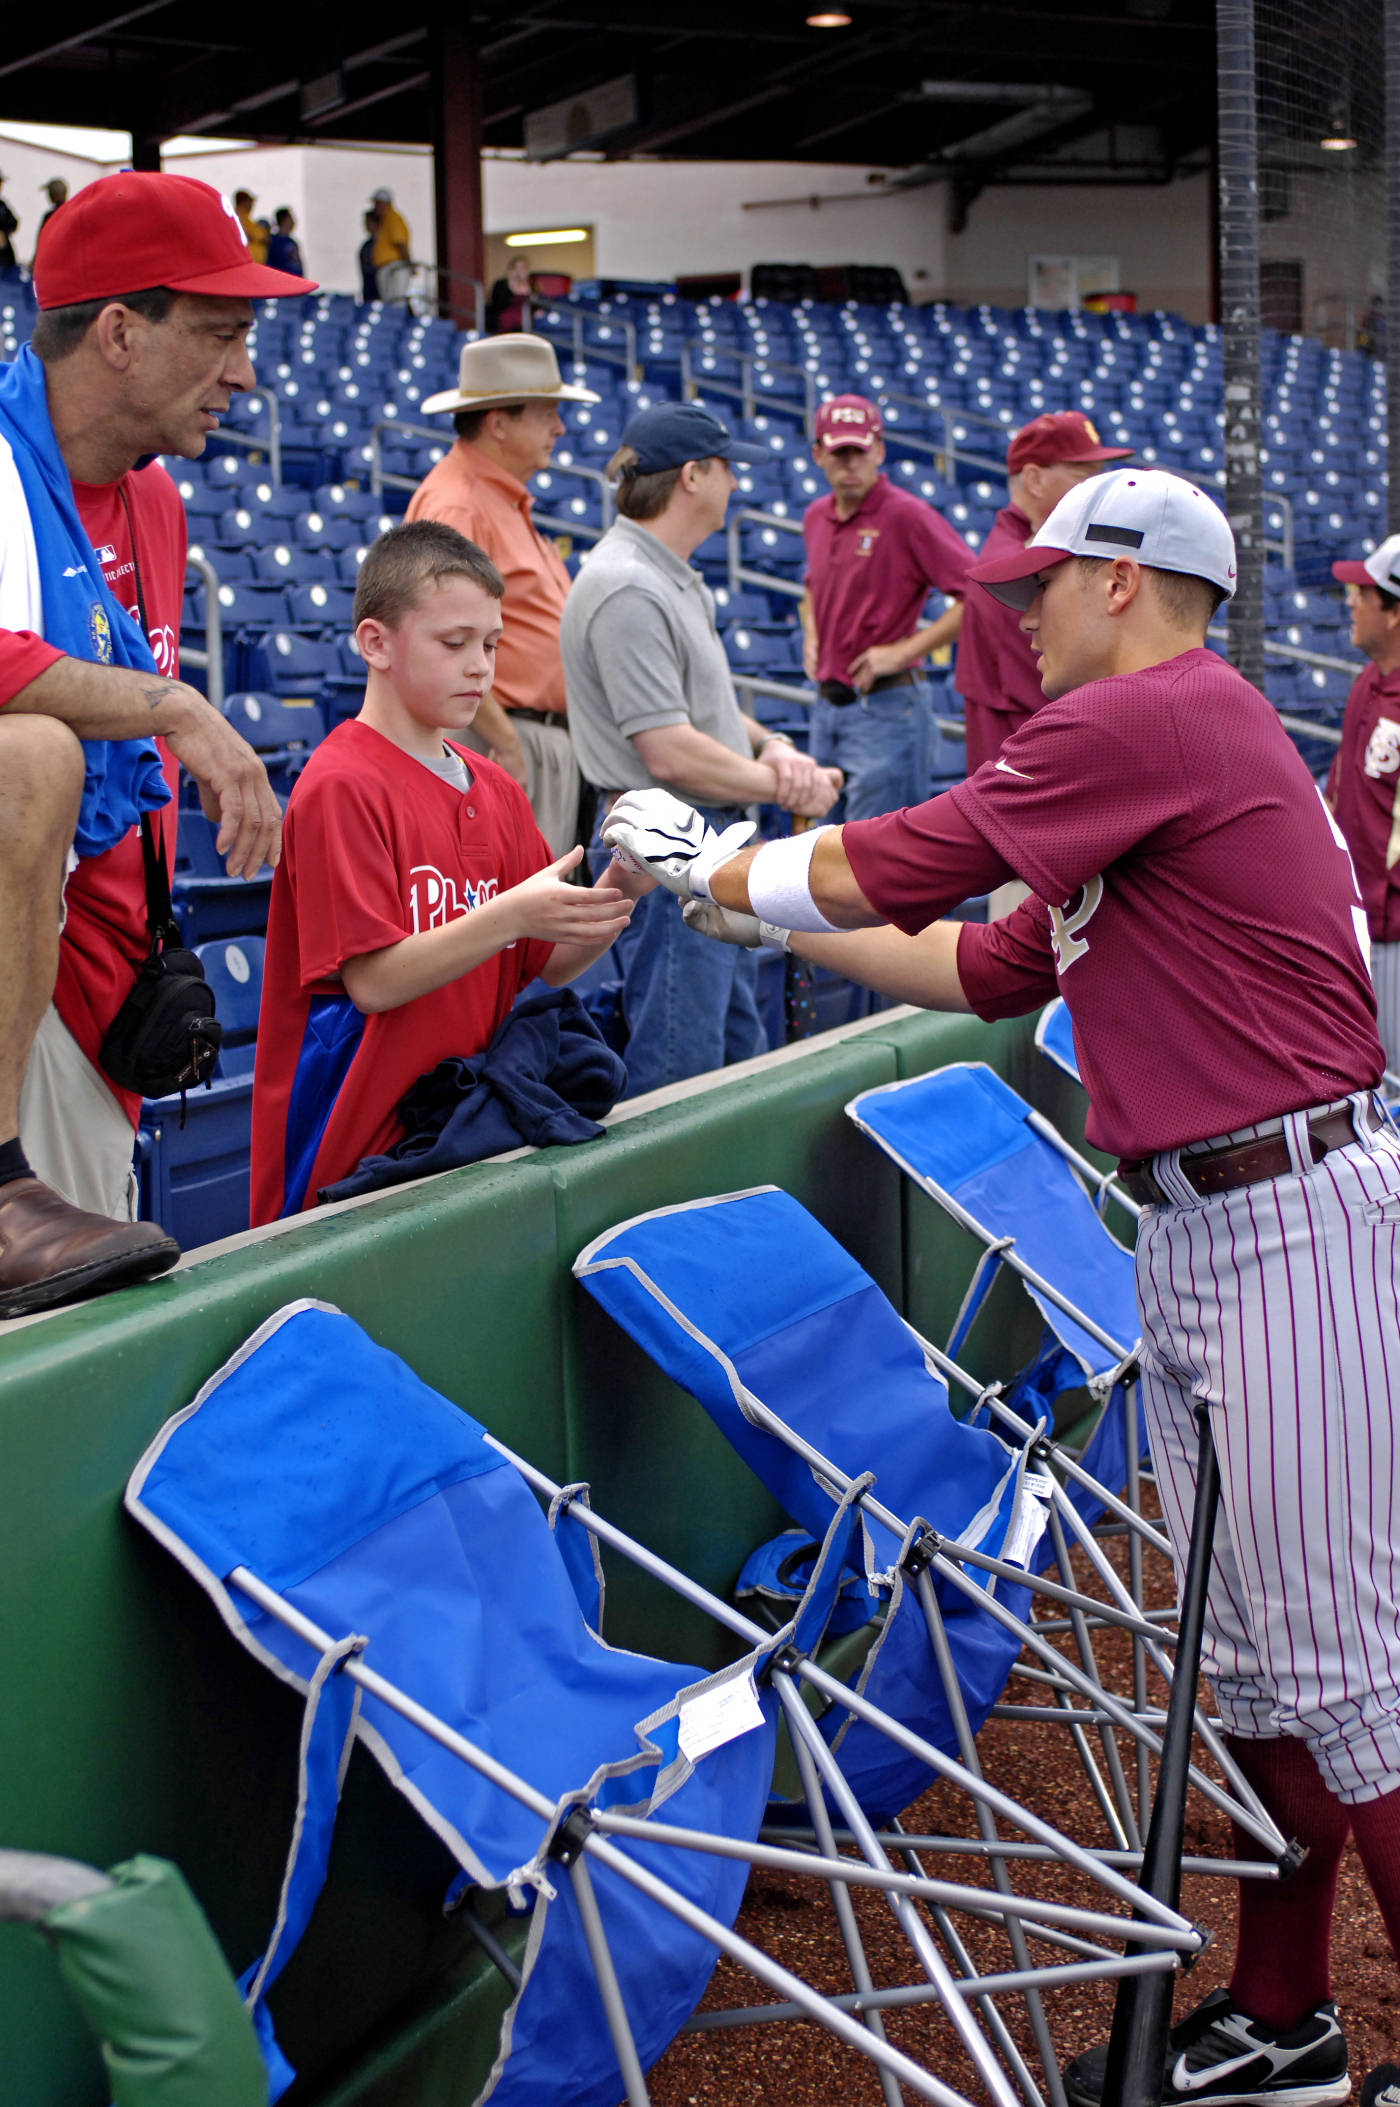 Tony Delmonico signs autographs for some fans